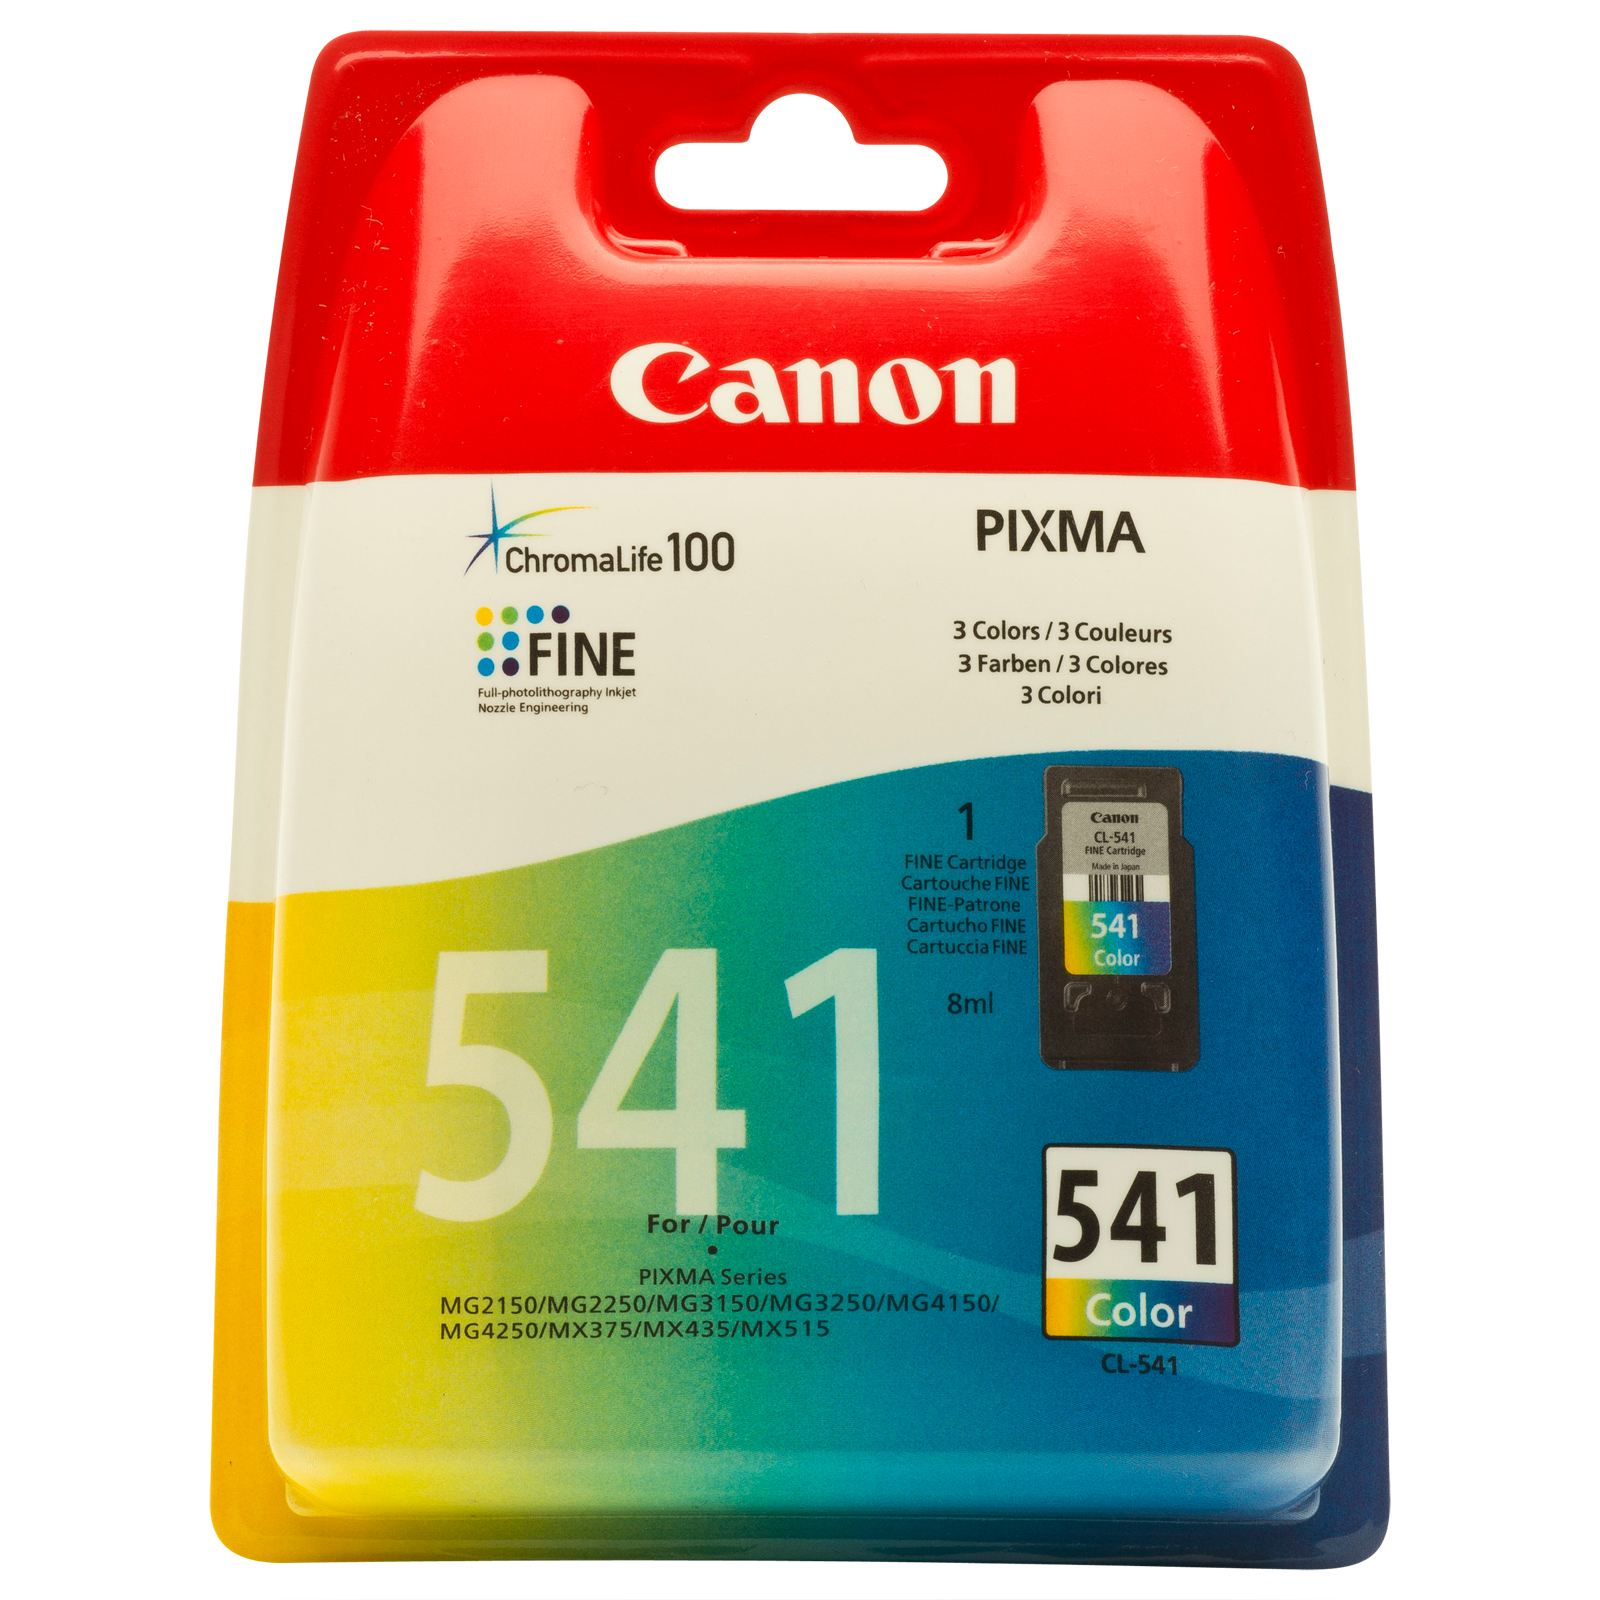 Cartus original color Canon CL541 MG2150 MG3150